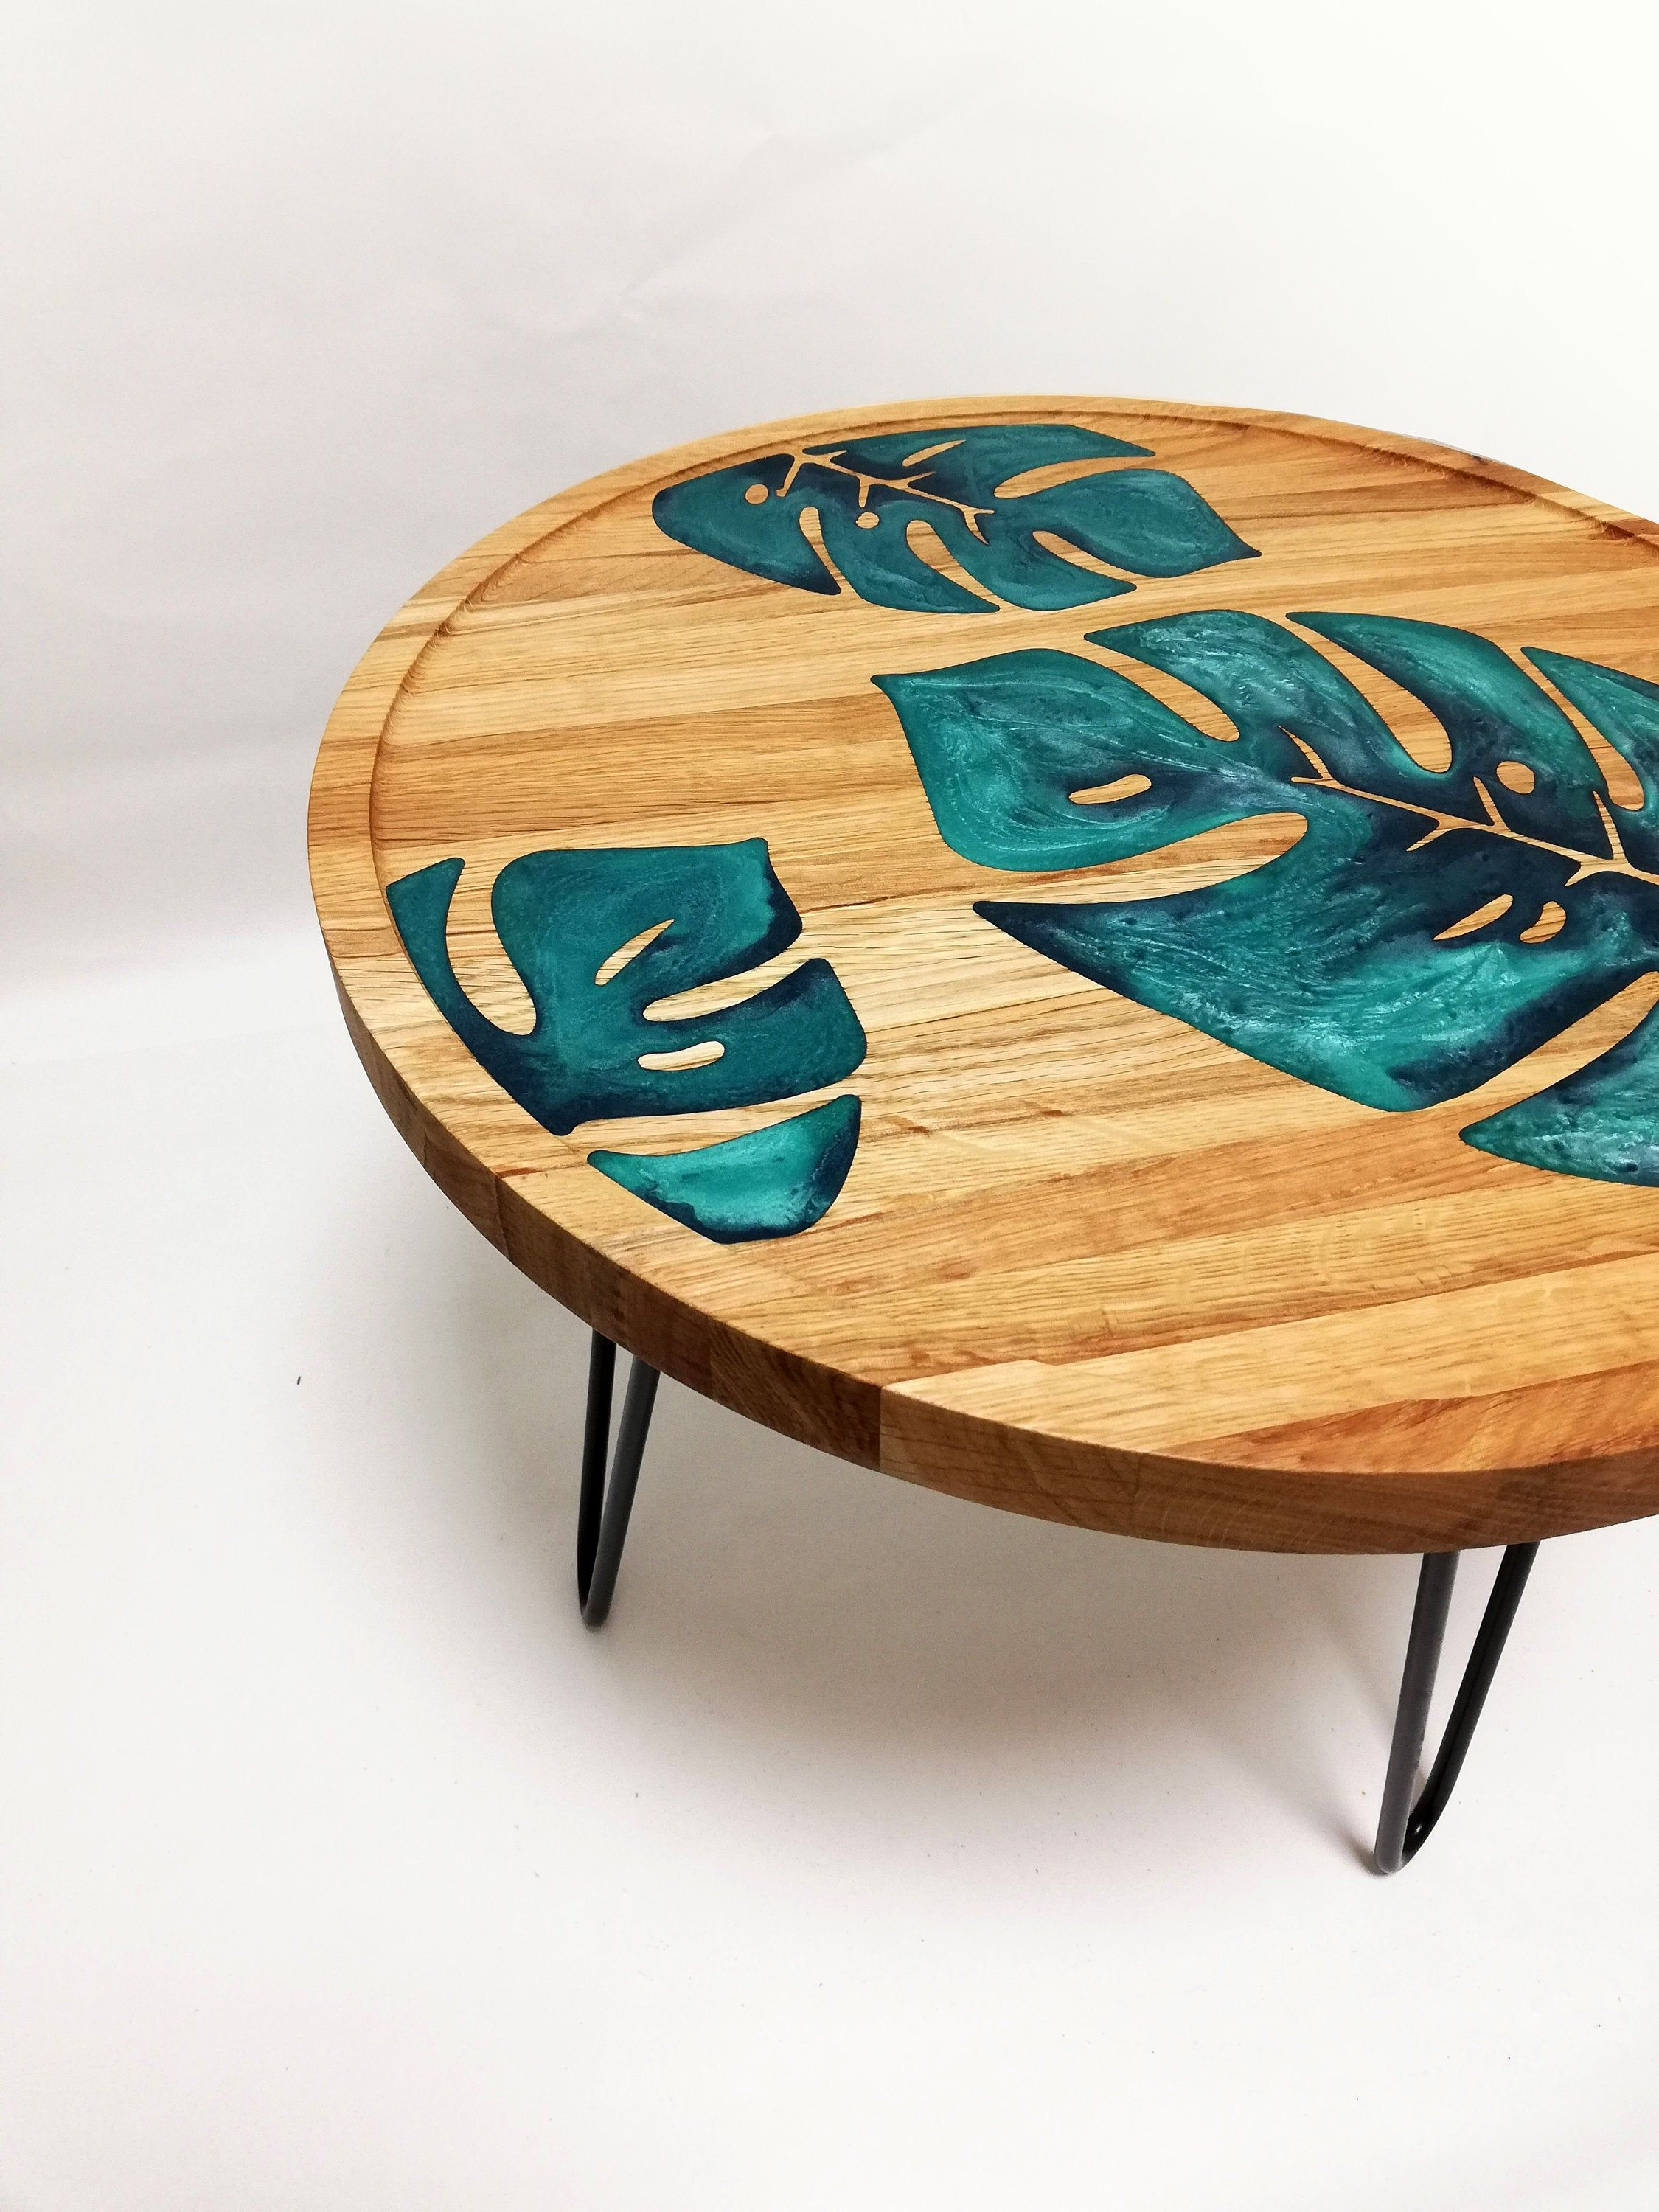 Monstera coffee table, Epoxy resin table, Decorative table, Modern interior accent, Housewarming gift, Wood table, Round table, Plant decor